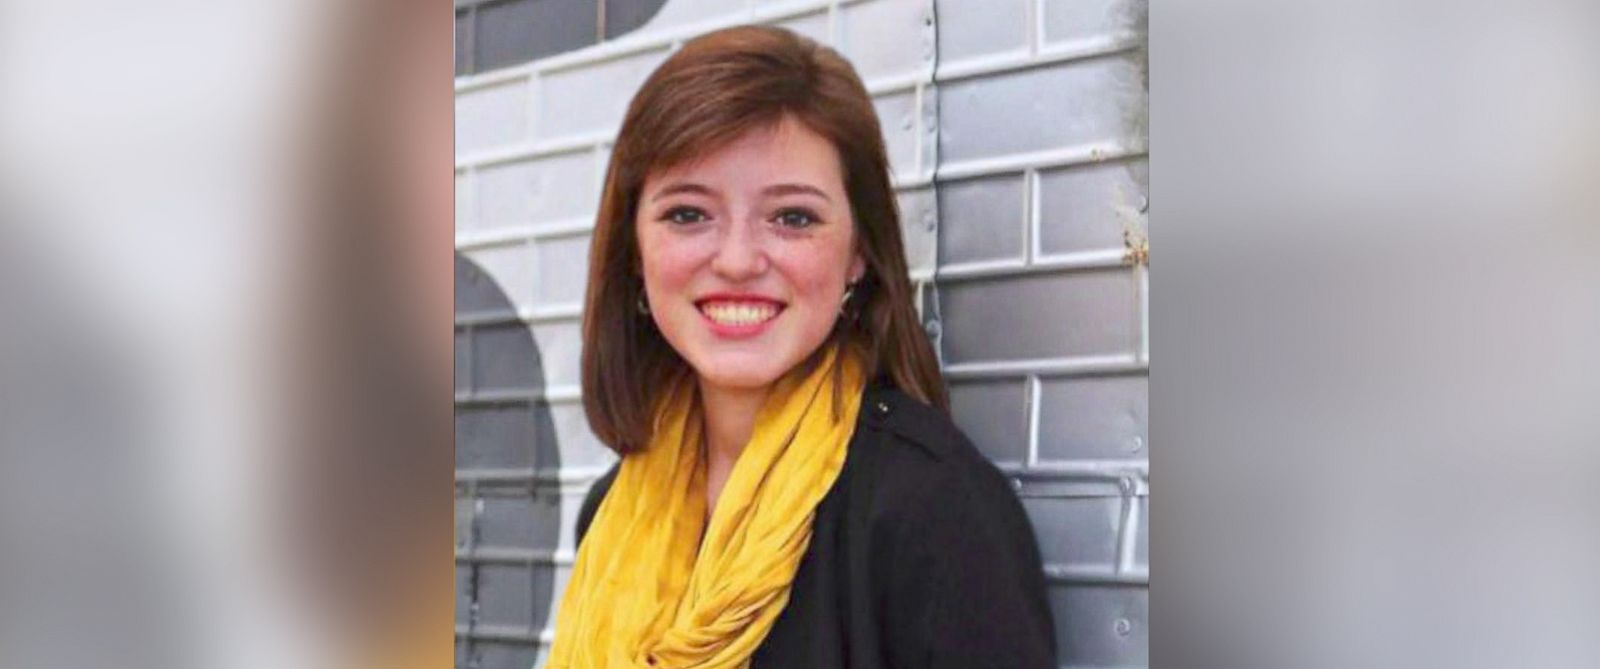 PHOTO: Taylor Gammel, 19, was missing for hours and police believed she was able to sleepwalk for nine miles.